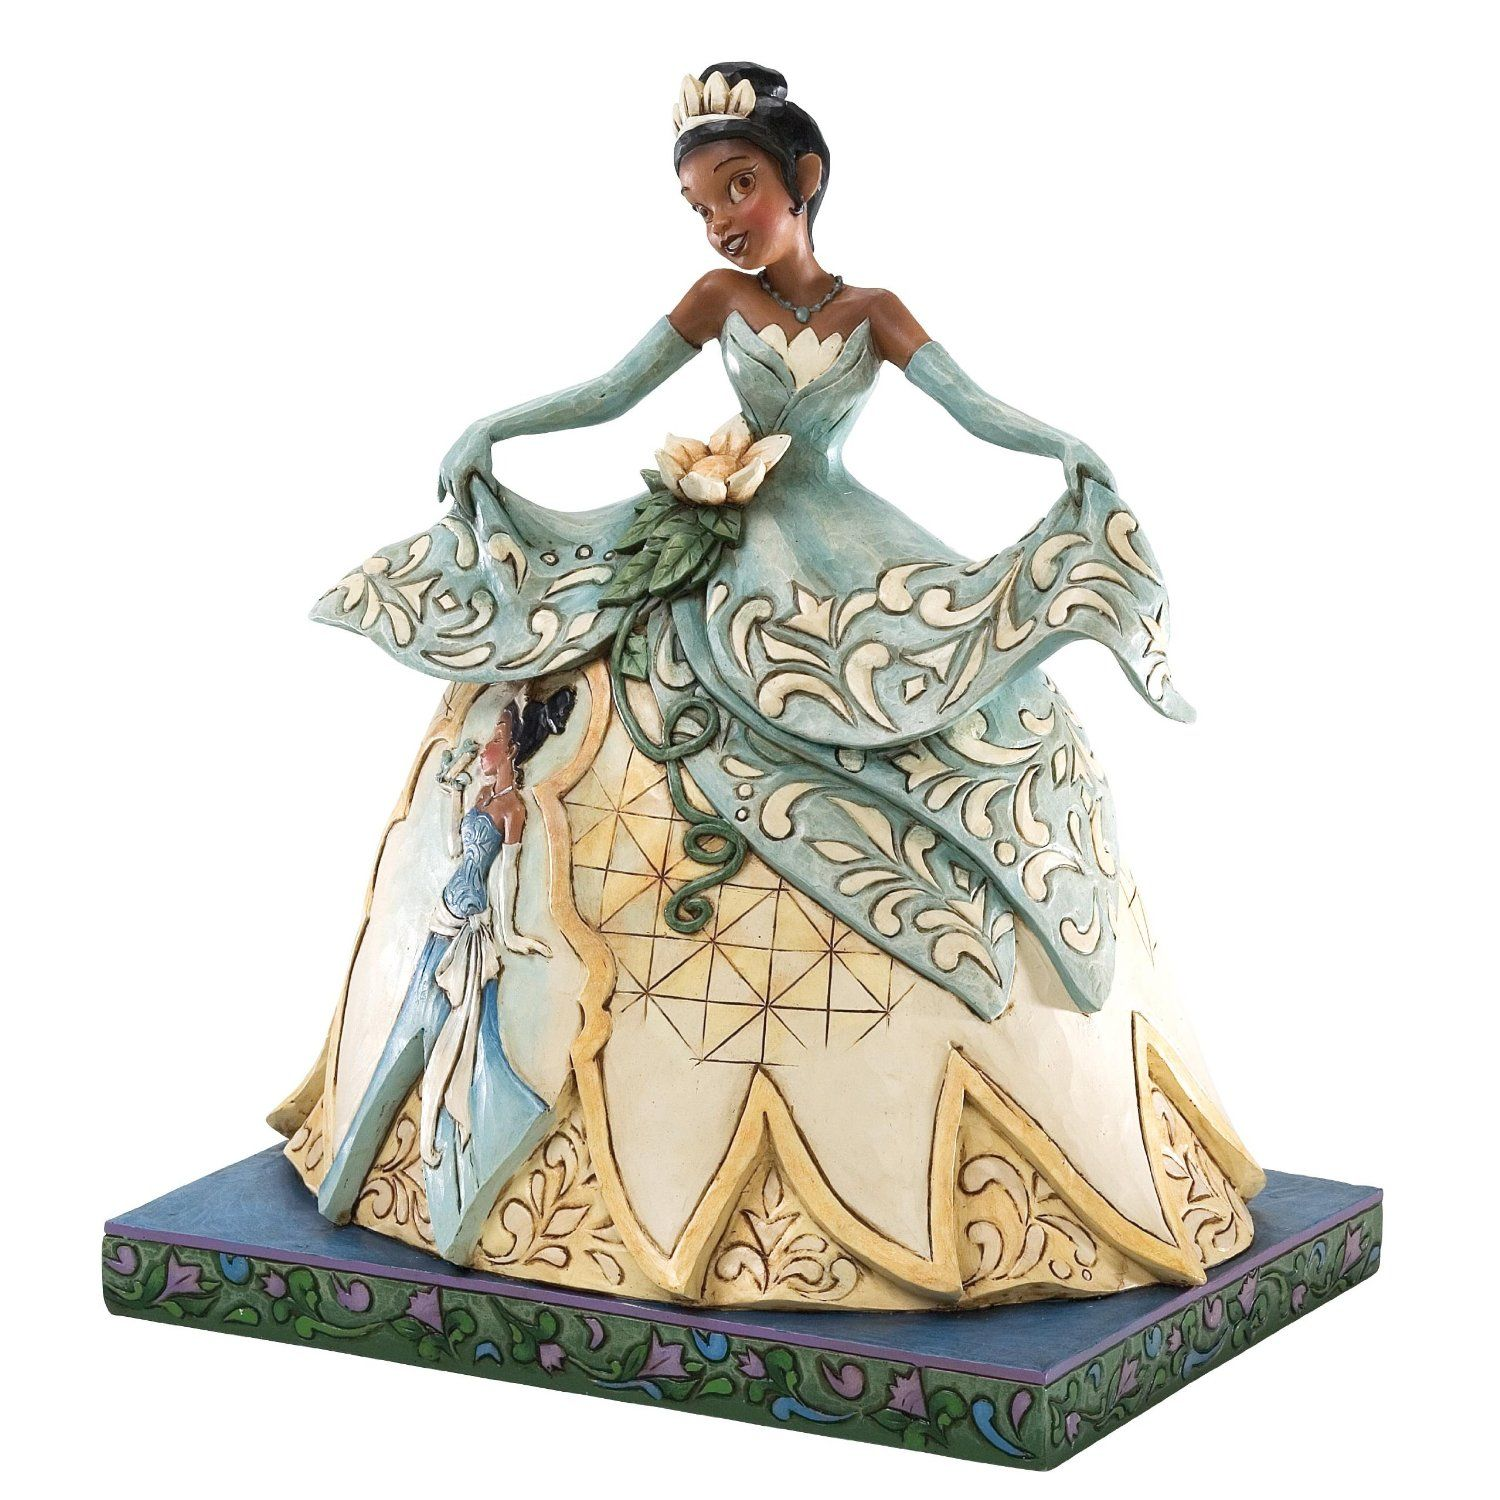 enesco disney traditions by jim shore princess tiana figurine 11 1 4 inch. Black Bedroom Furniture Sets. Home Design Ideas